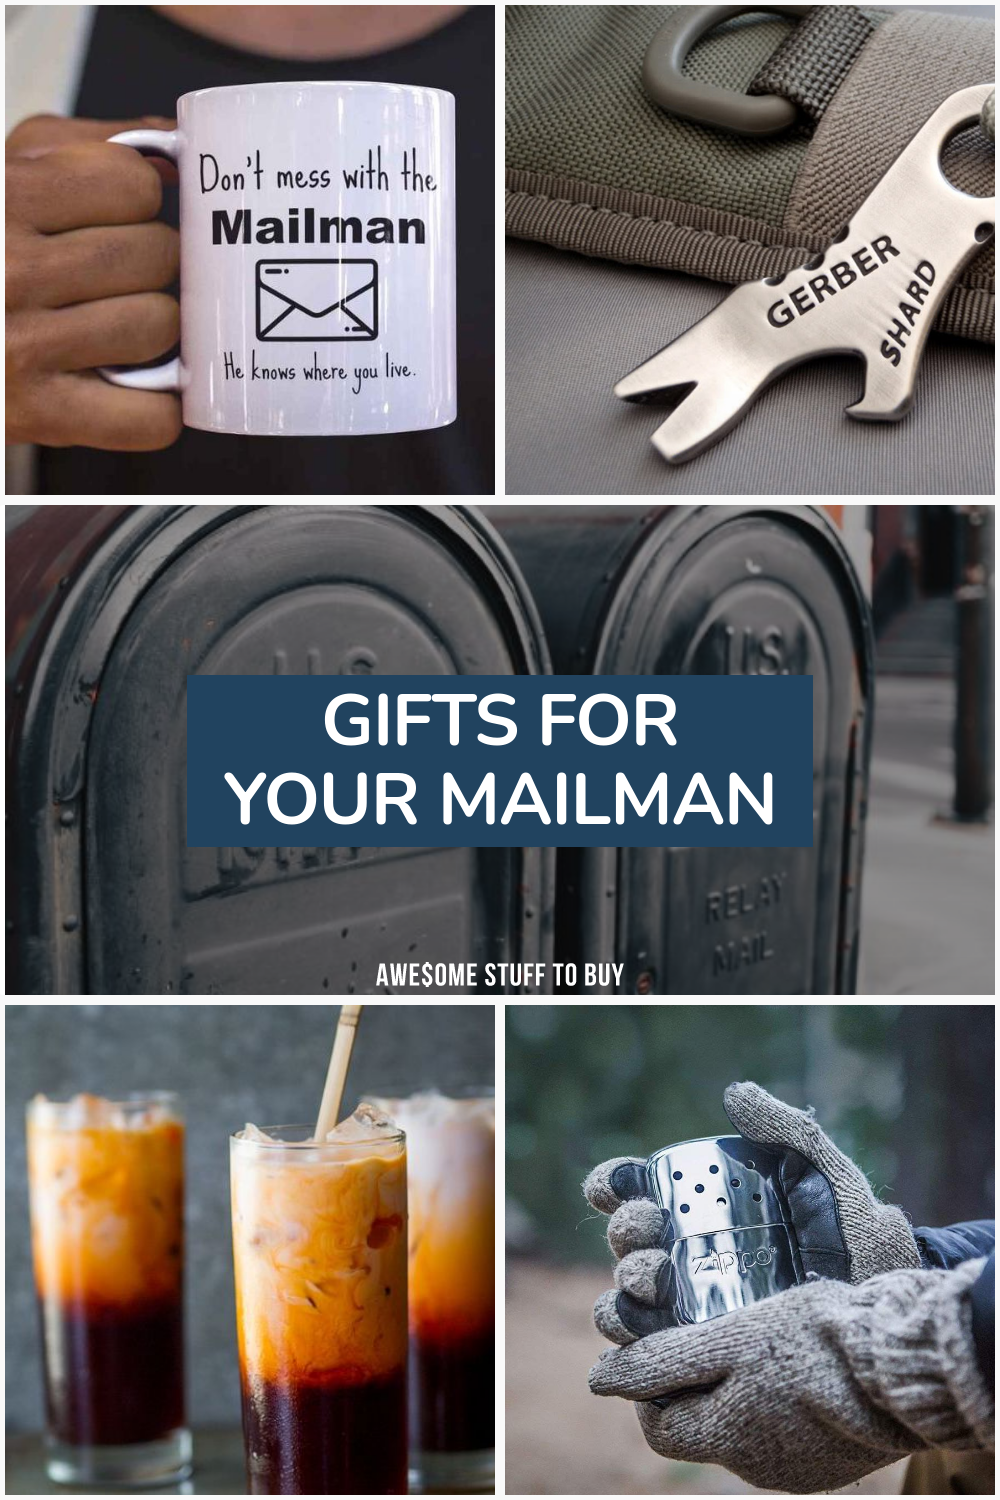 Mailman Gifts // Awesome Stuff to Buy